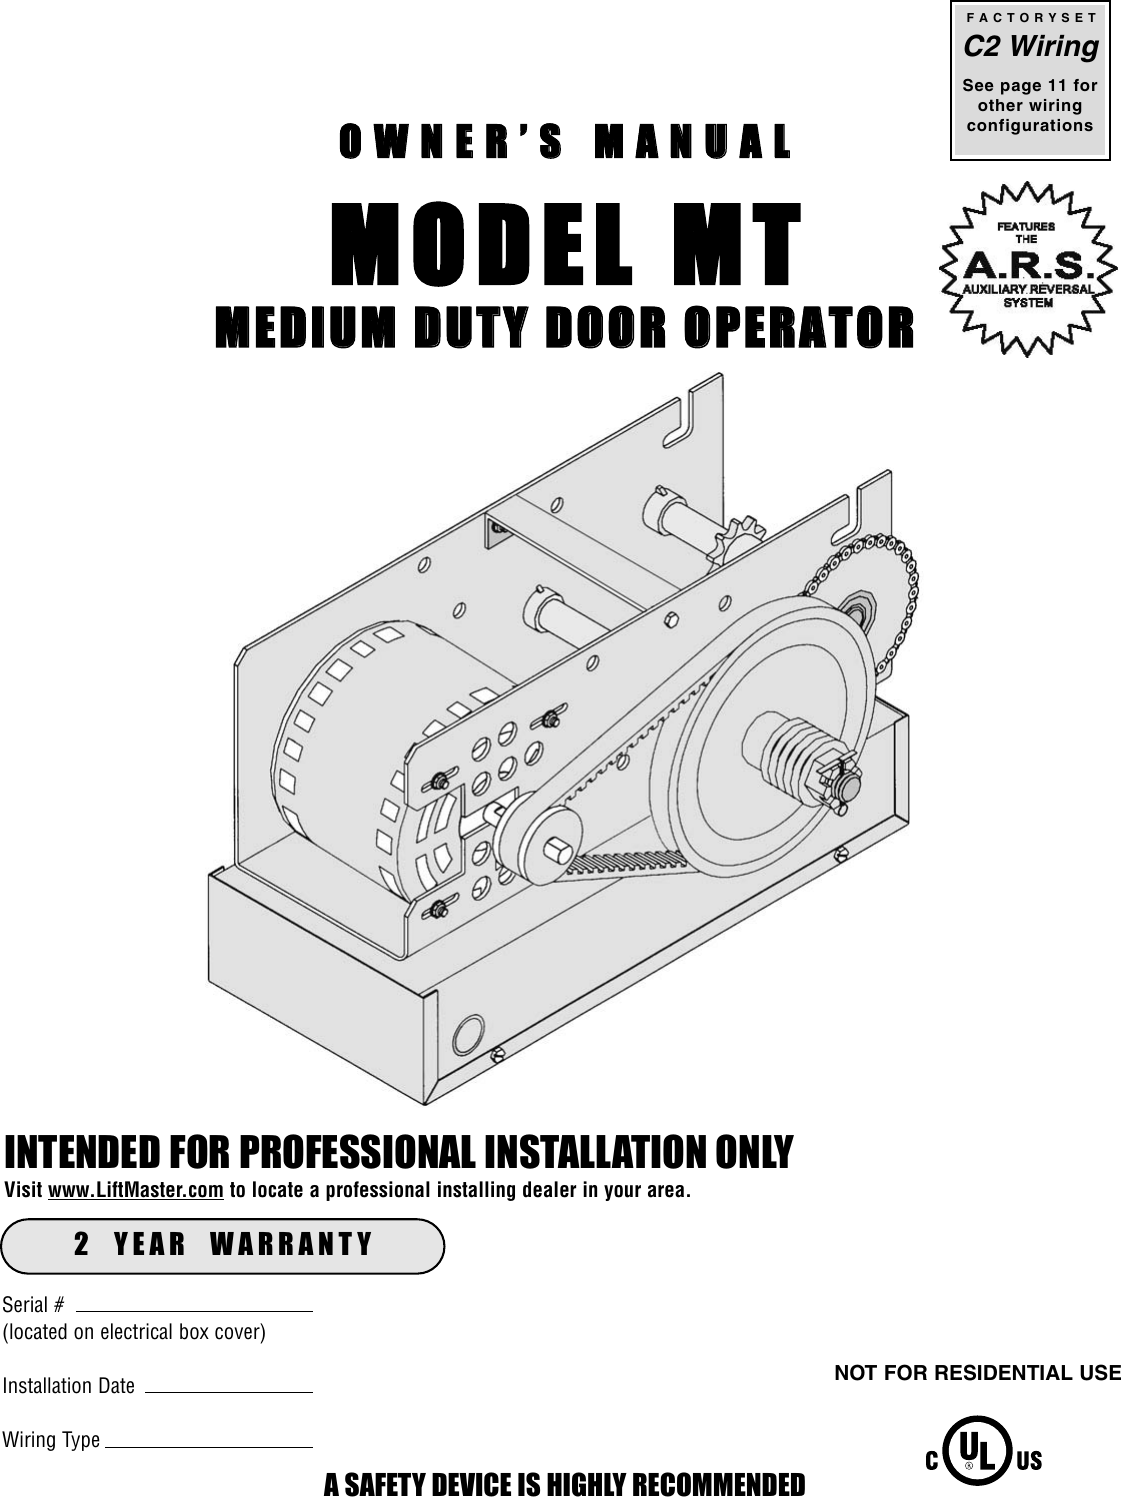 Liftmaster Mt5011 Owners Manual 01 10332M on lift master schematic diagram, liftmaster control panel, liftmaster motor diagram, lift master motor wire diagram, lift master parts diagram, liftmaster remote control, induction cooker circuit diagram, gate garage door opener wire diagram,